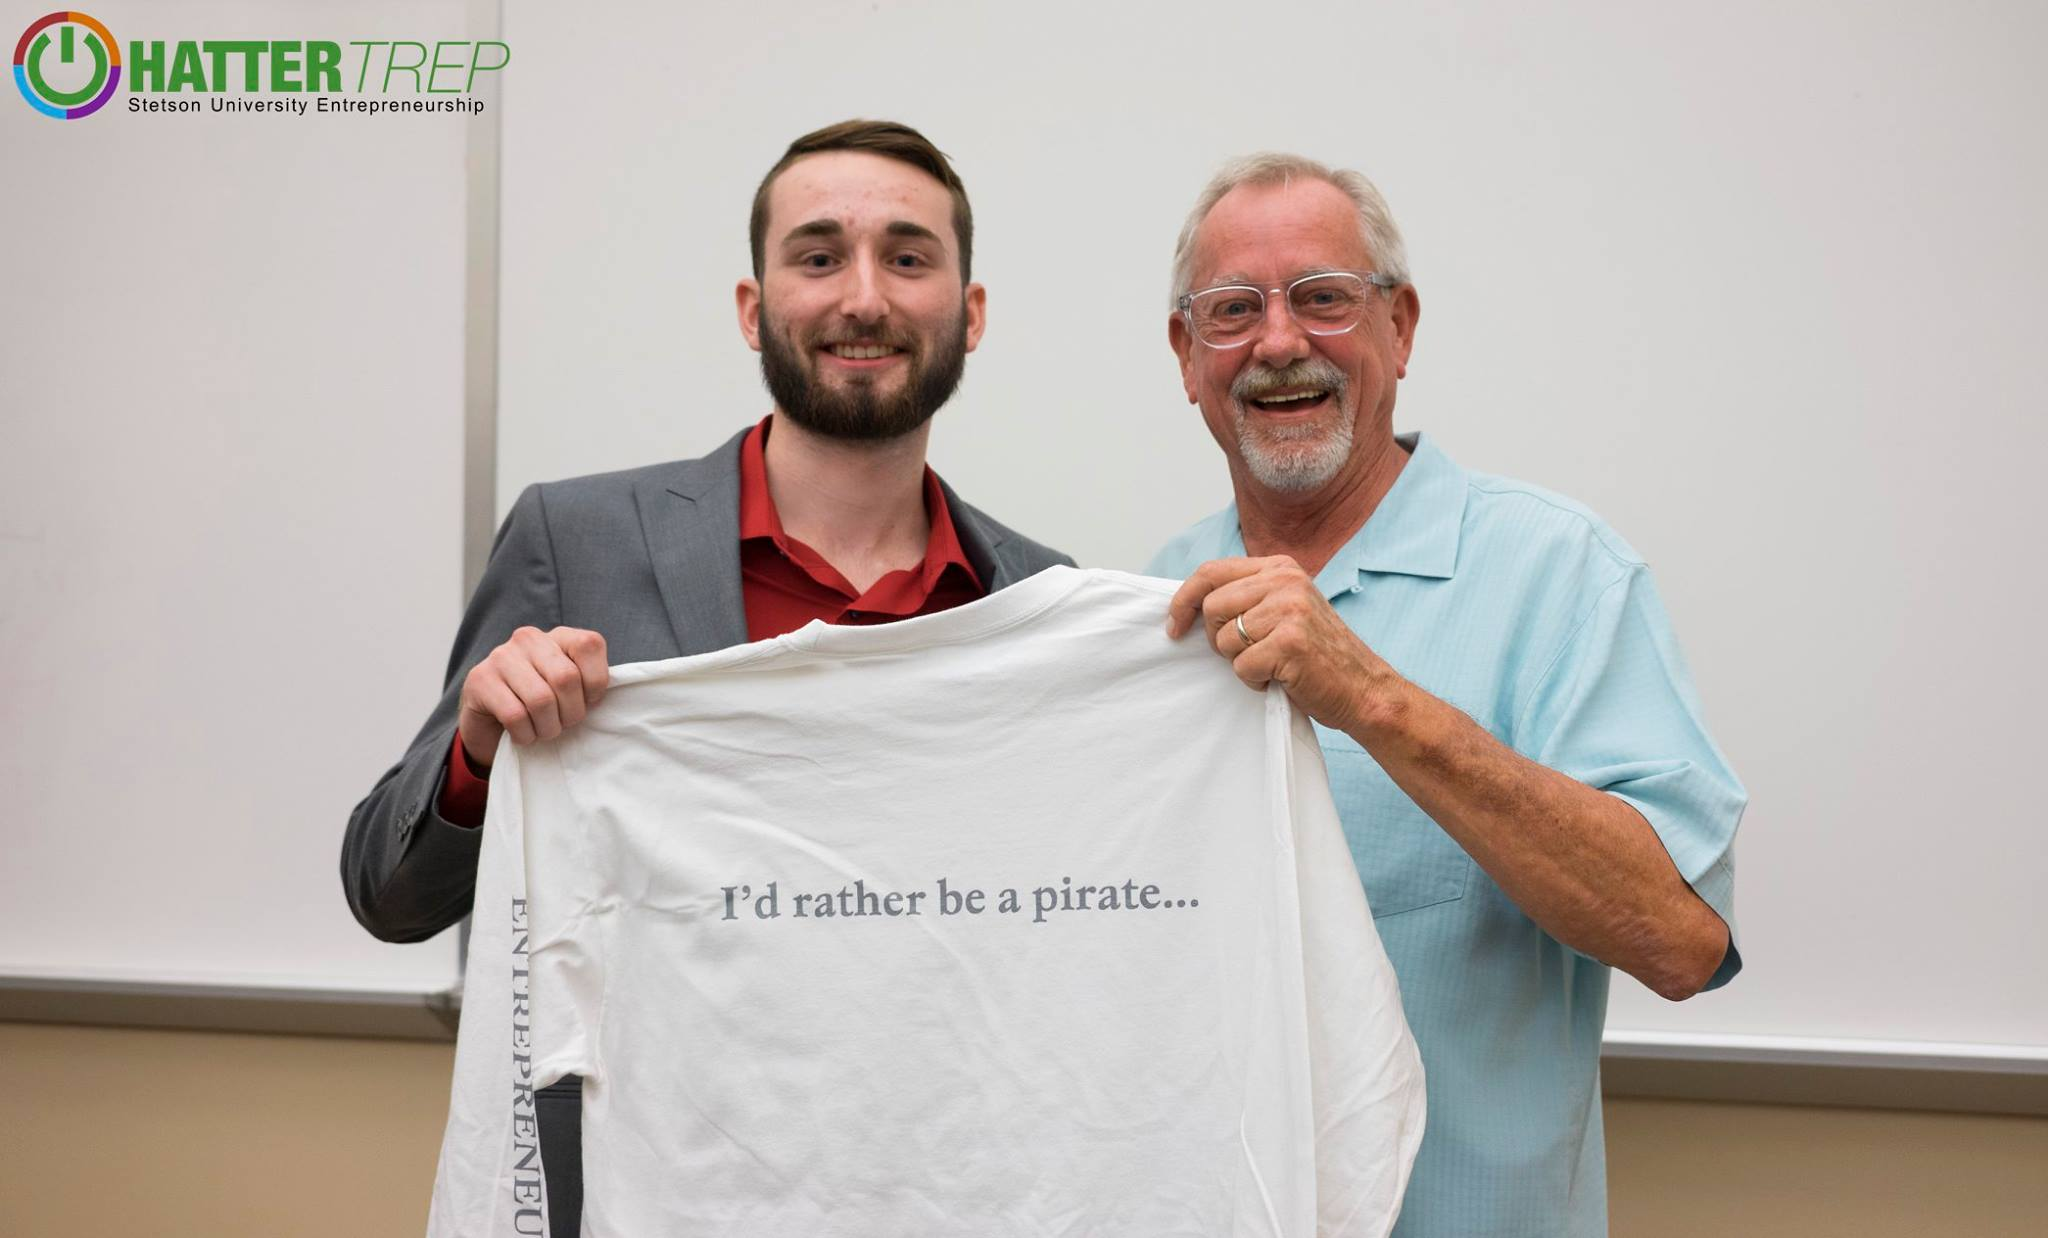 Luke receiving first prize at Stetson's Fall business pitch competition